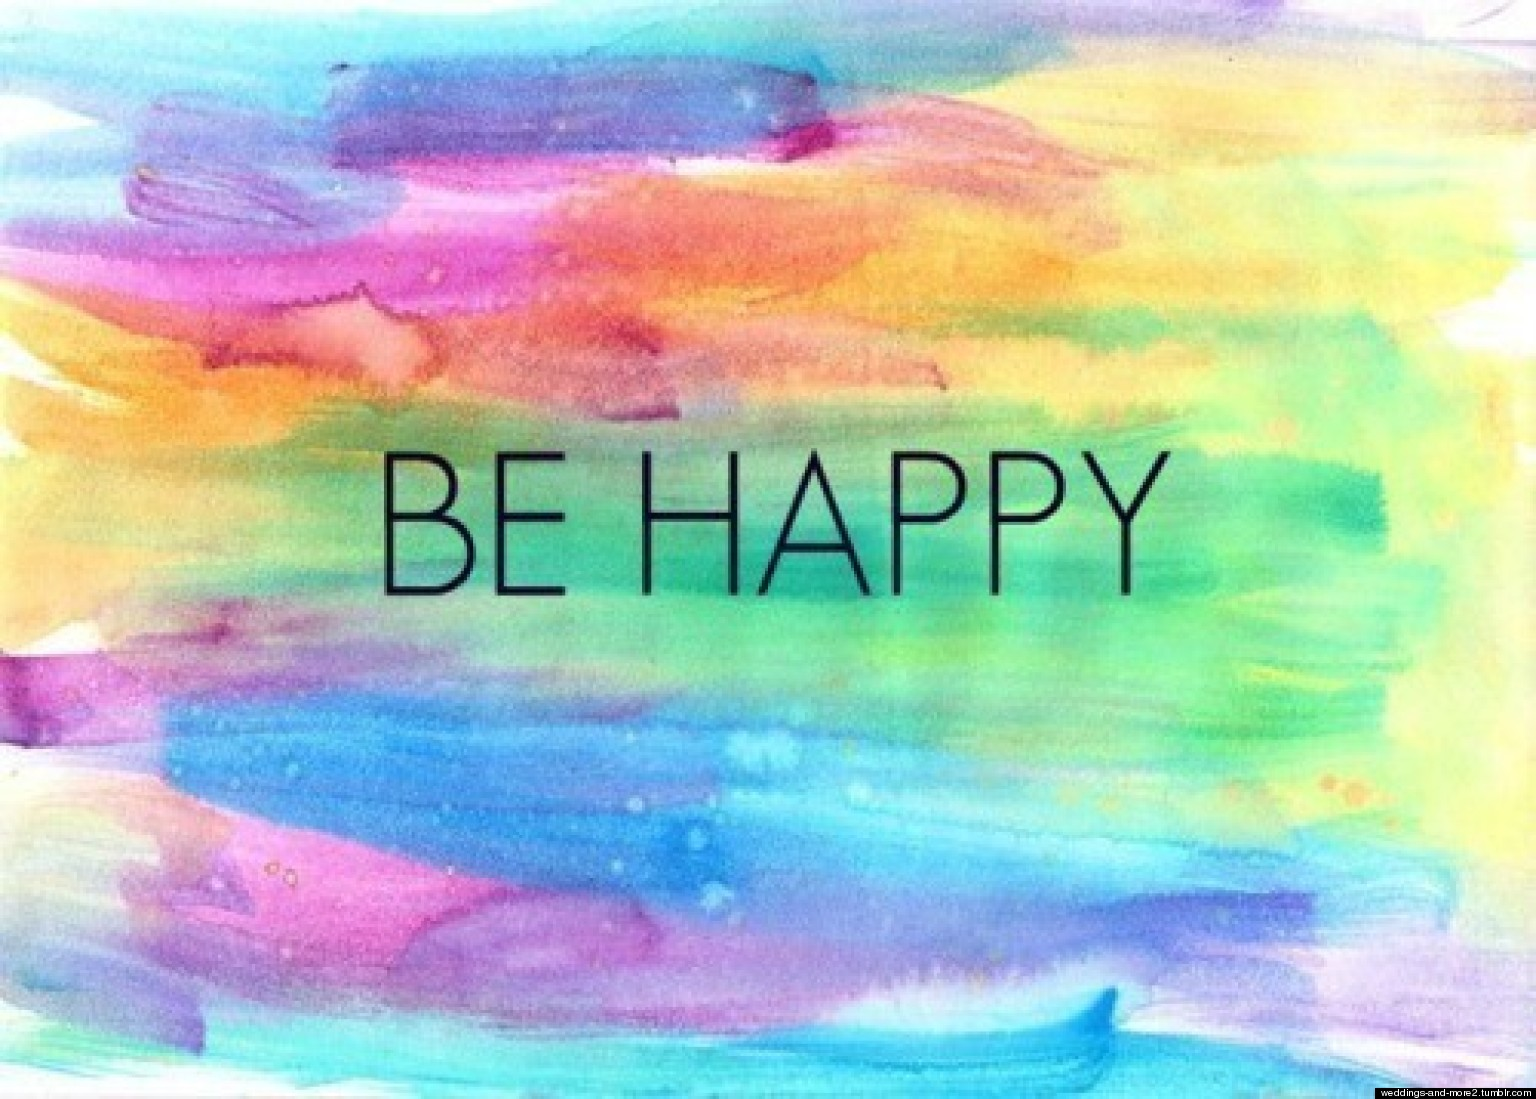 Inspirational Quotes About Happiness Quotes About: Inspirational Picture Quotes...: BE HAPPY